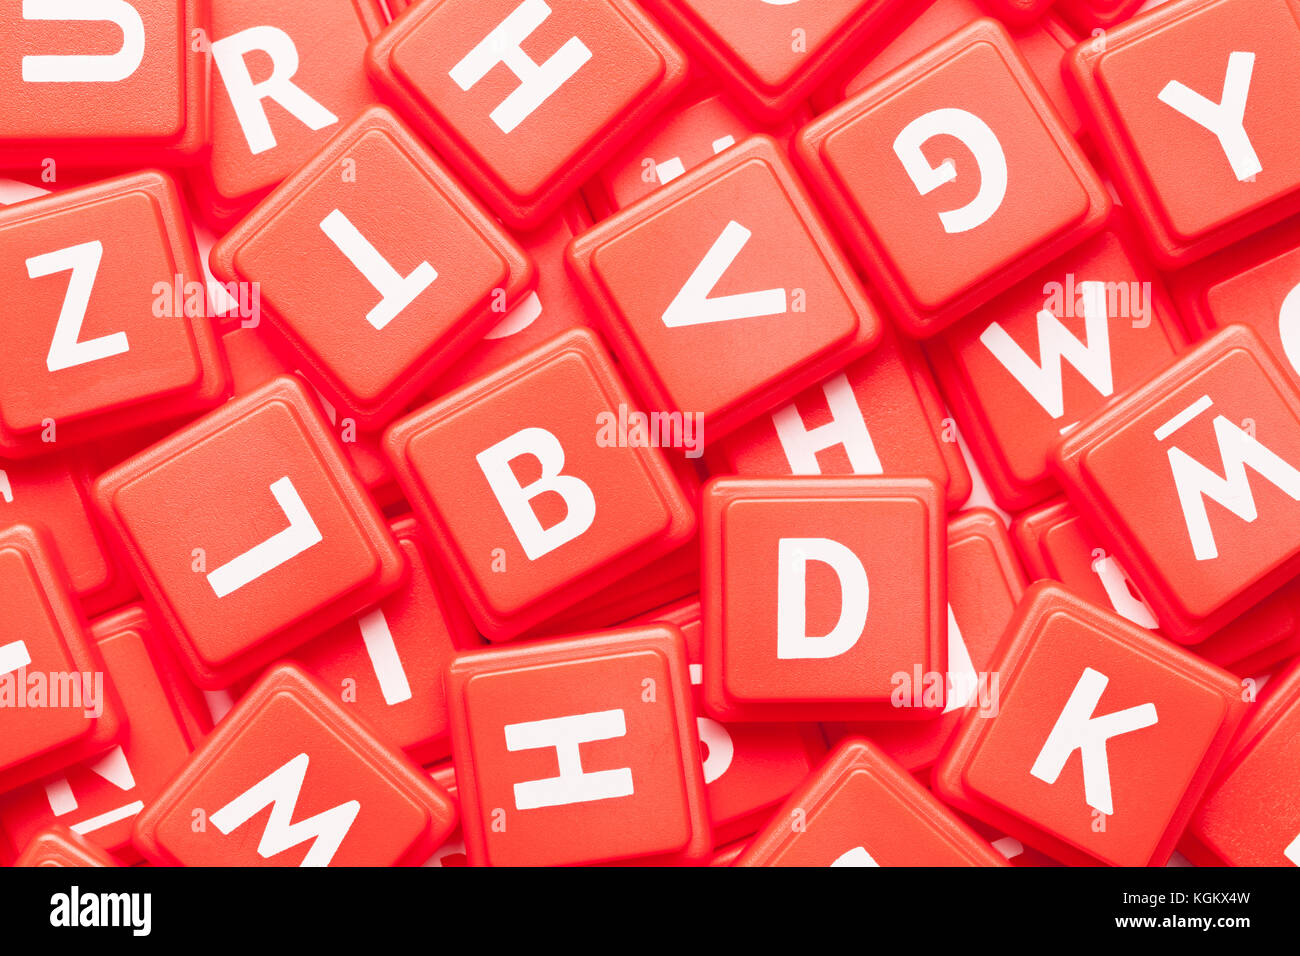 Pile of Red Letter Game Tiles Background. - Stock Image